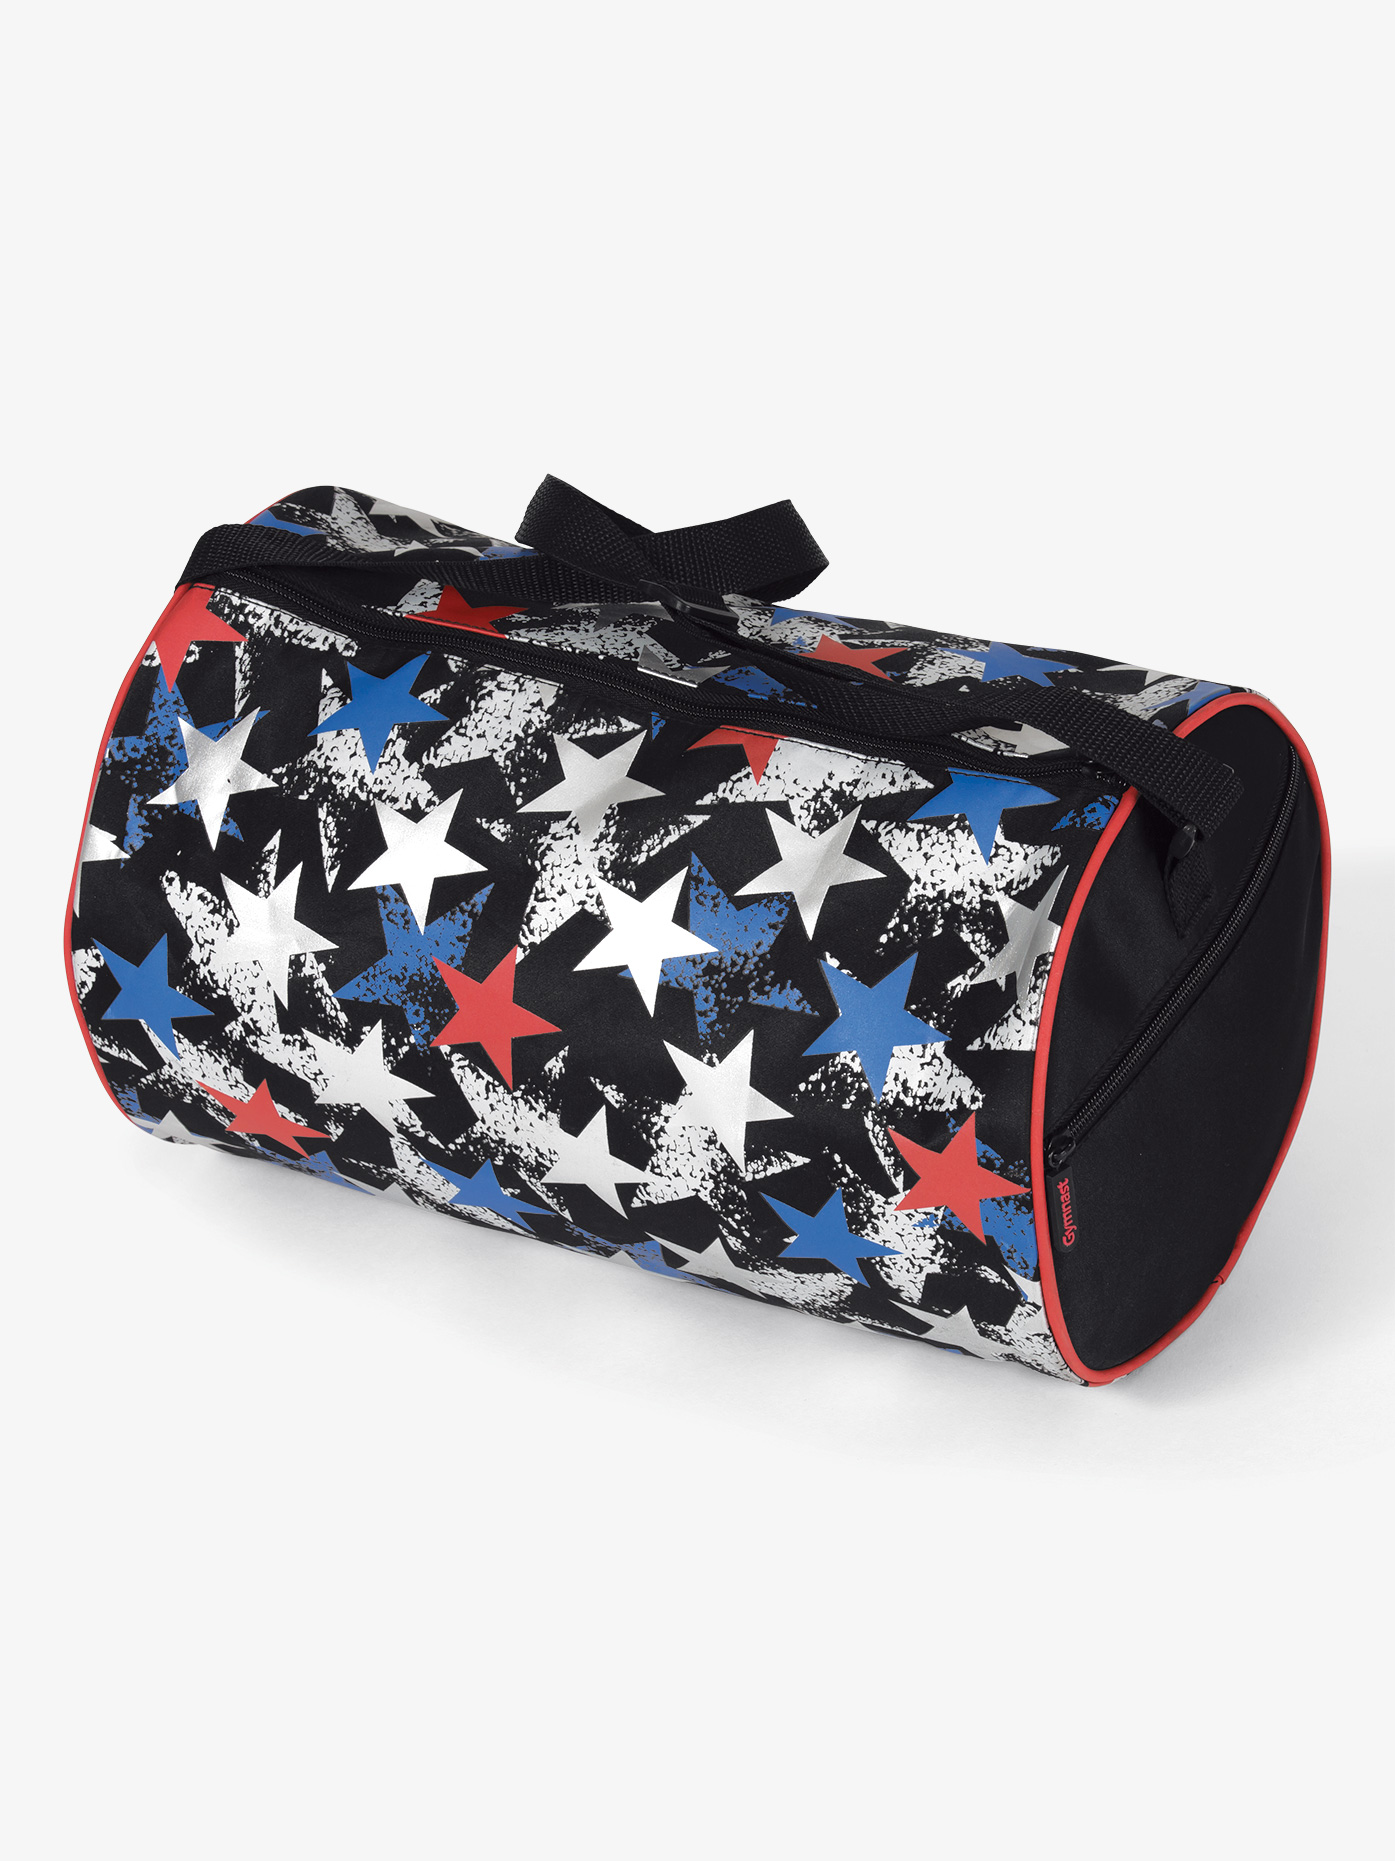 DansBagz Shining Star Duffle Bag B724